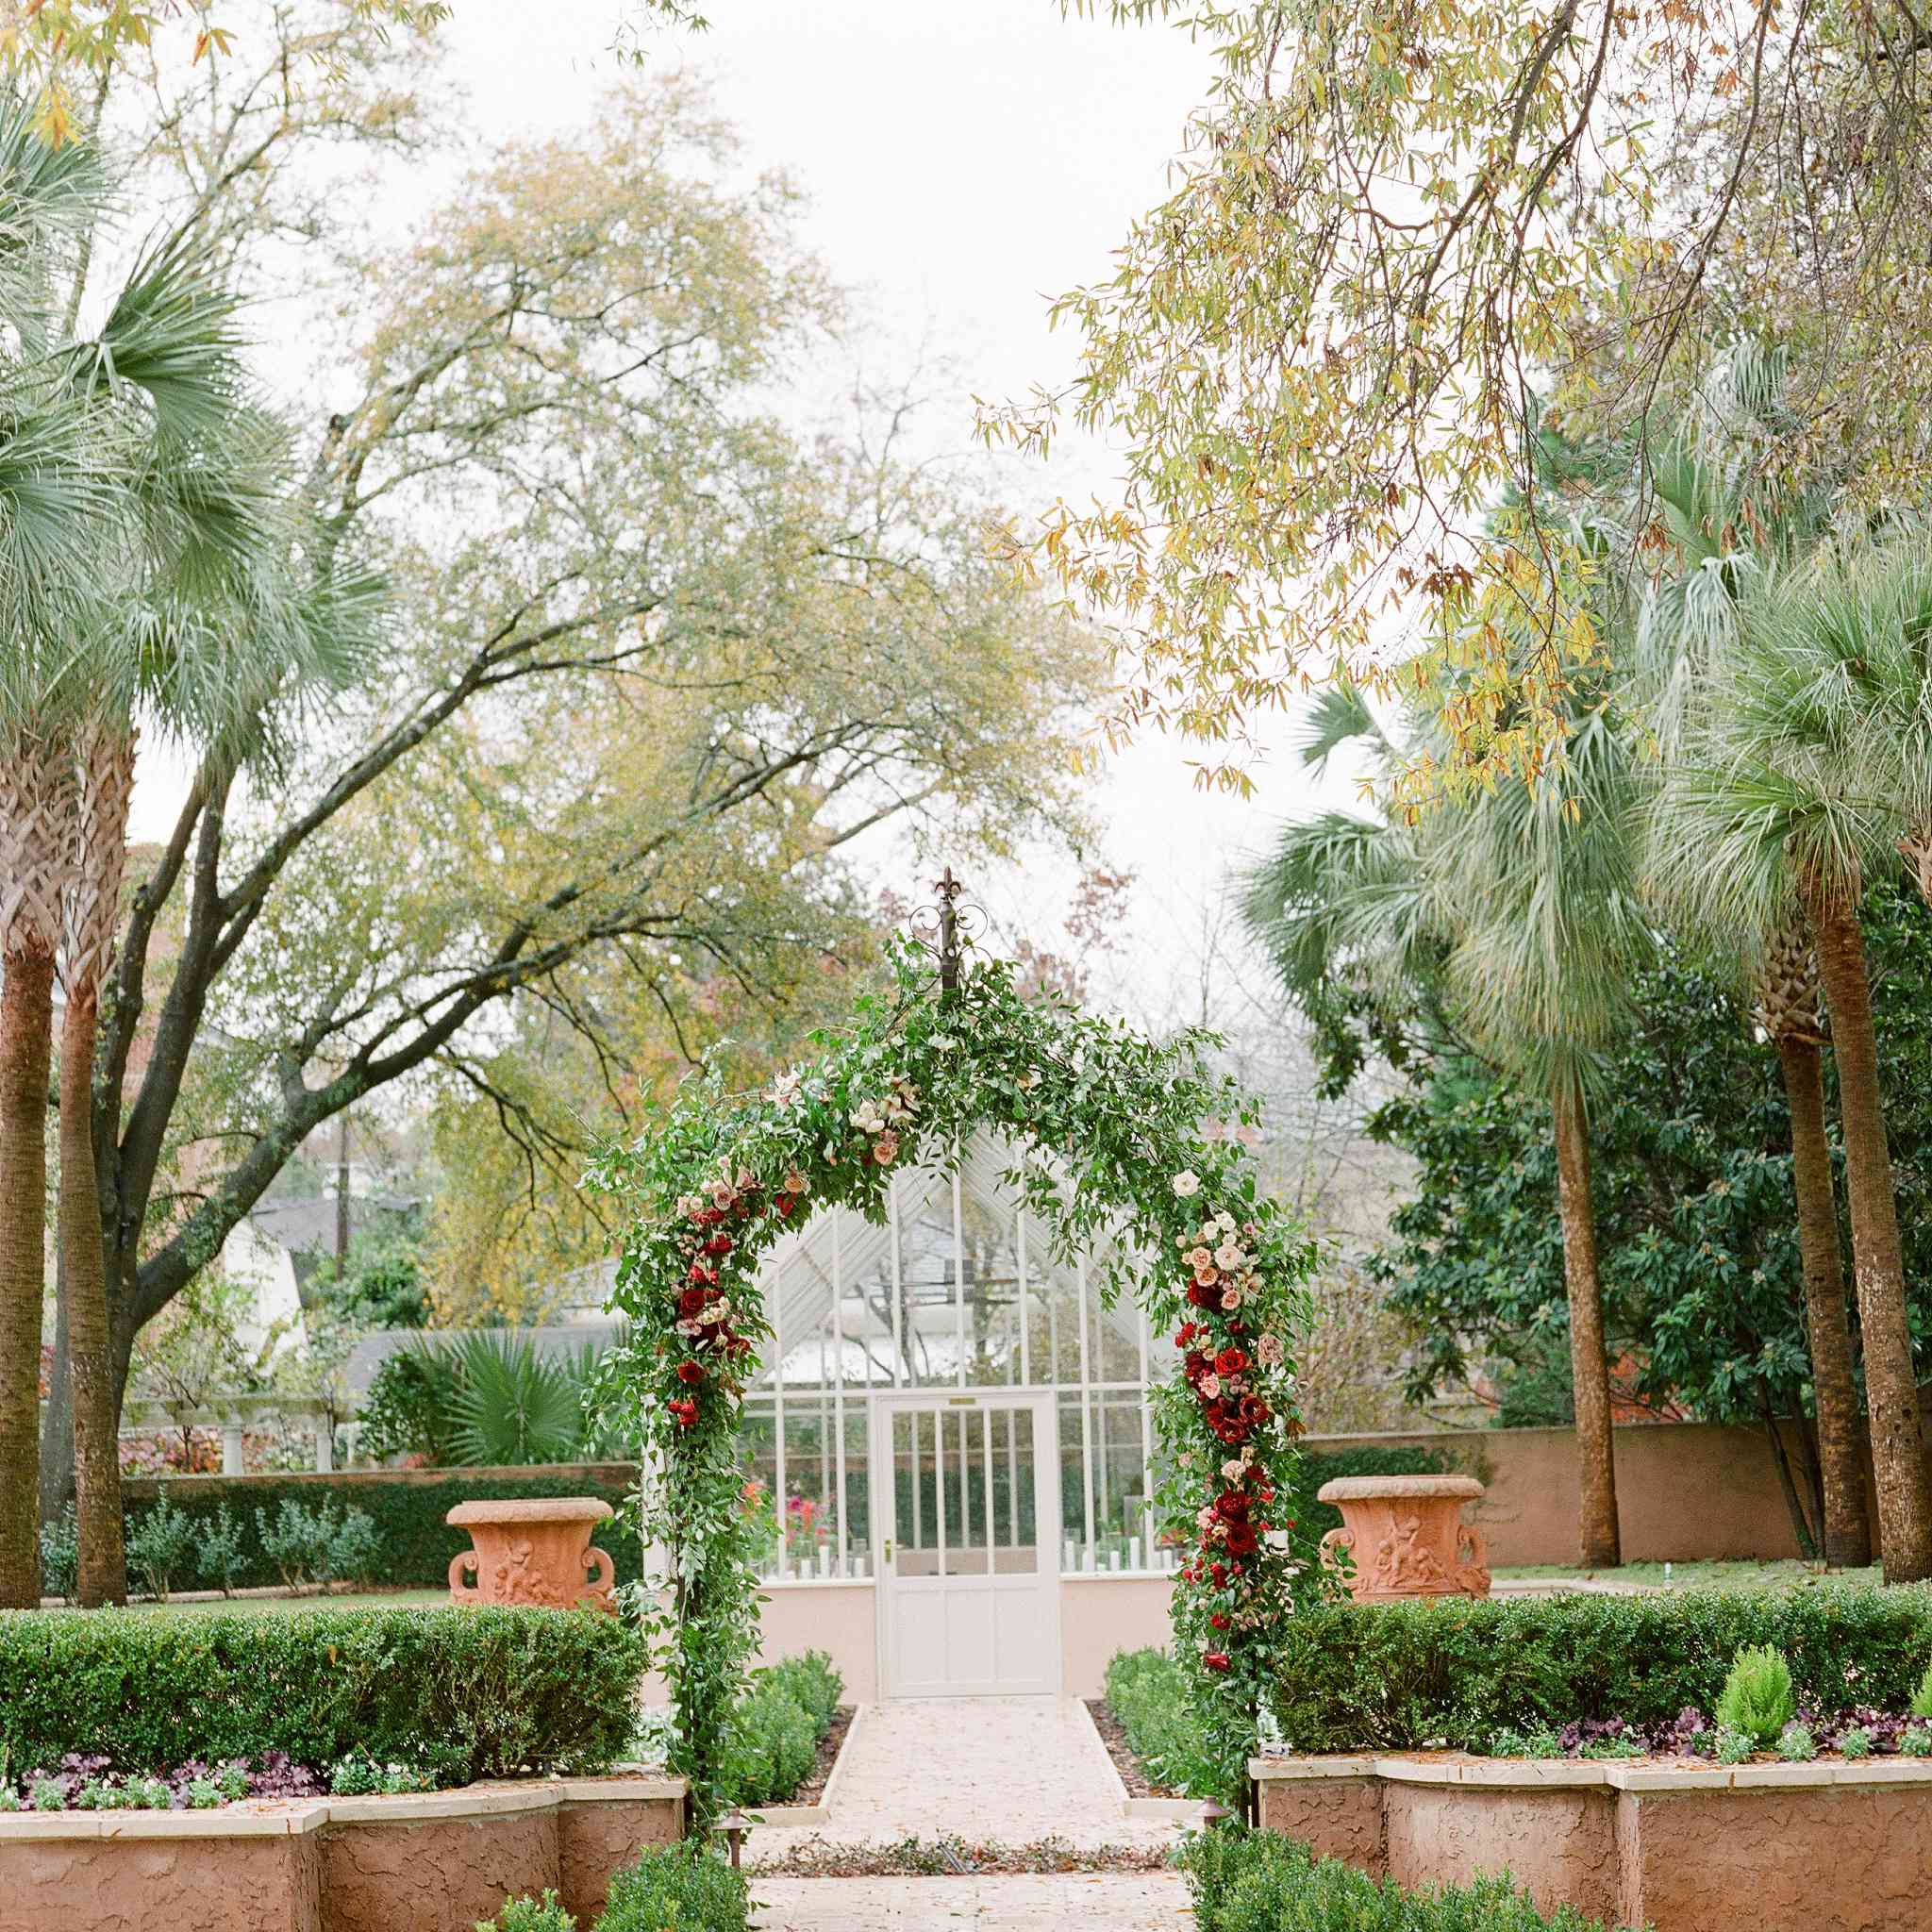 Archway of greenery